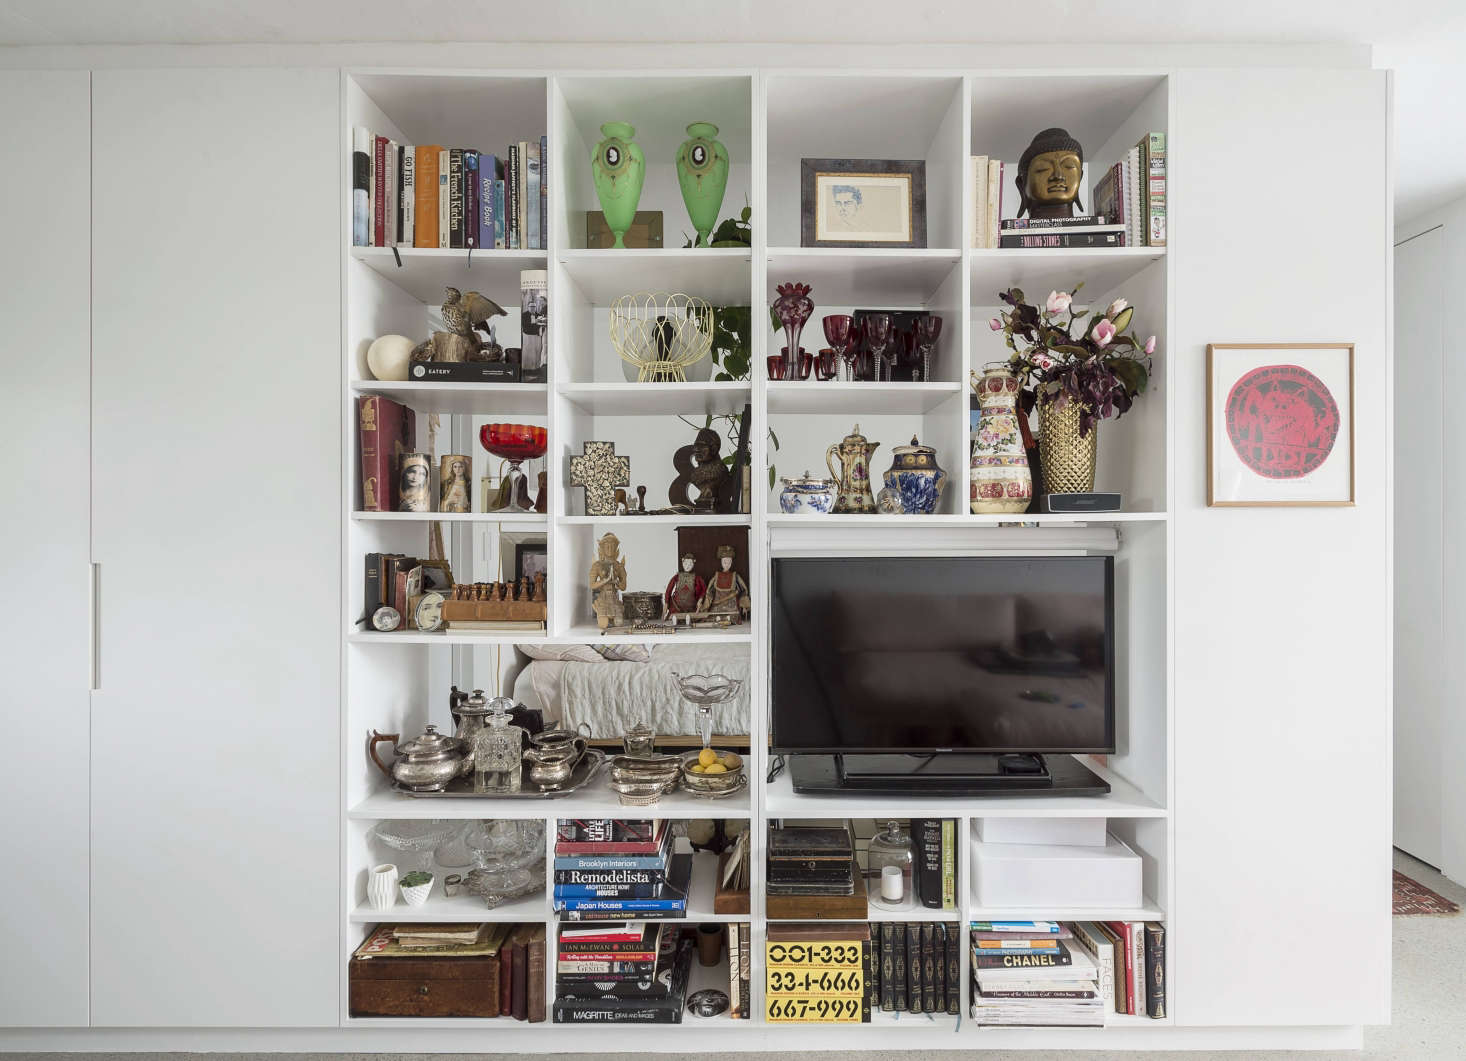 How To Separate A Room Without A Wall Small Space Ideas To Steal 7 Clever Twists On Room Dividers